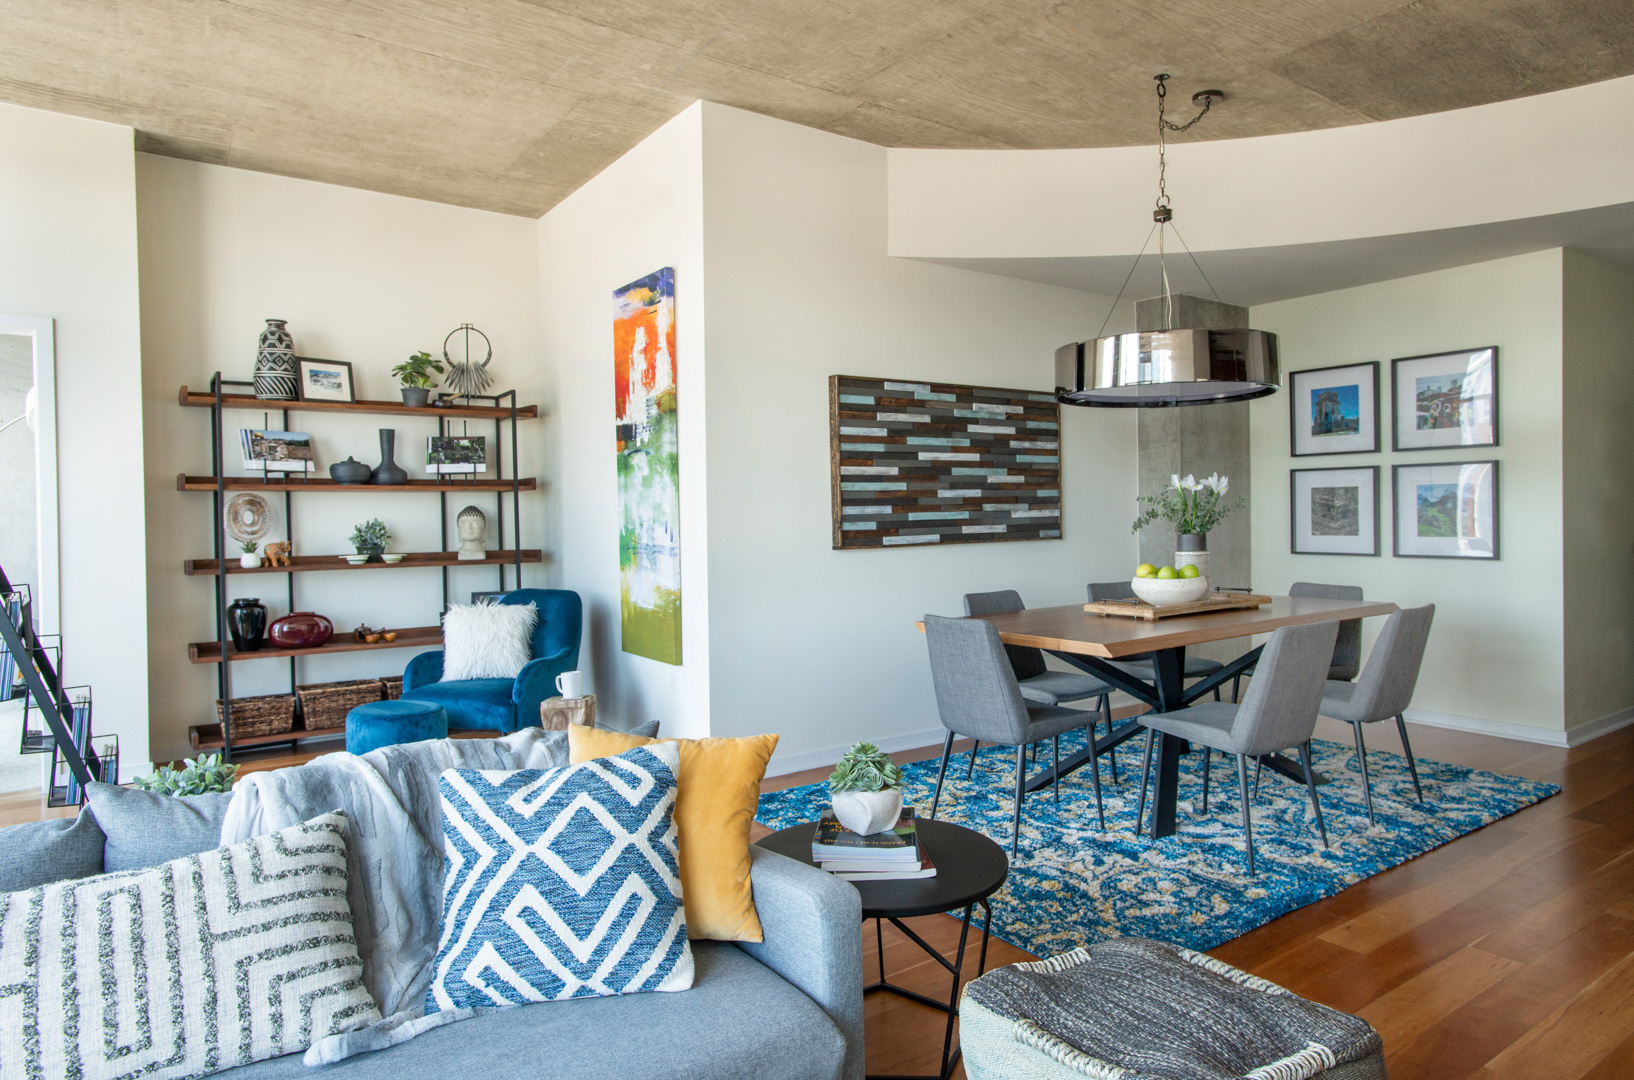 Glass House Loft living room dining room and reading nook with yellow and blue accents and global decor